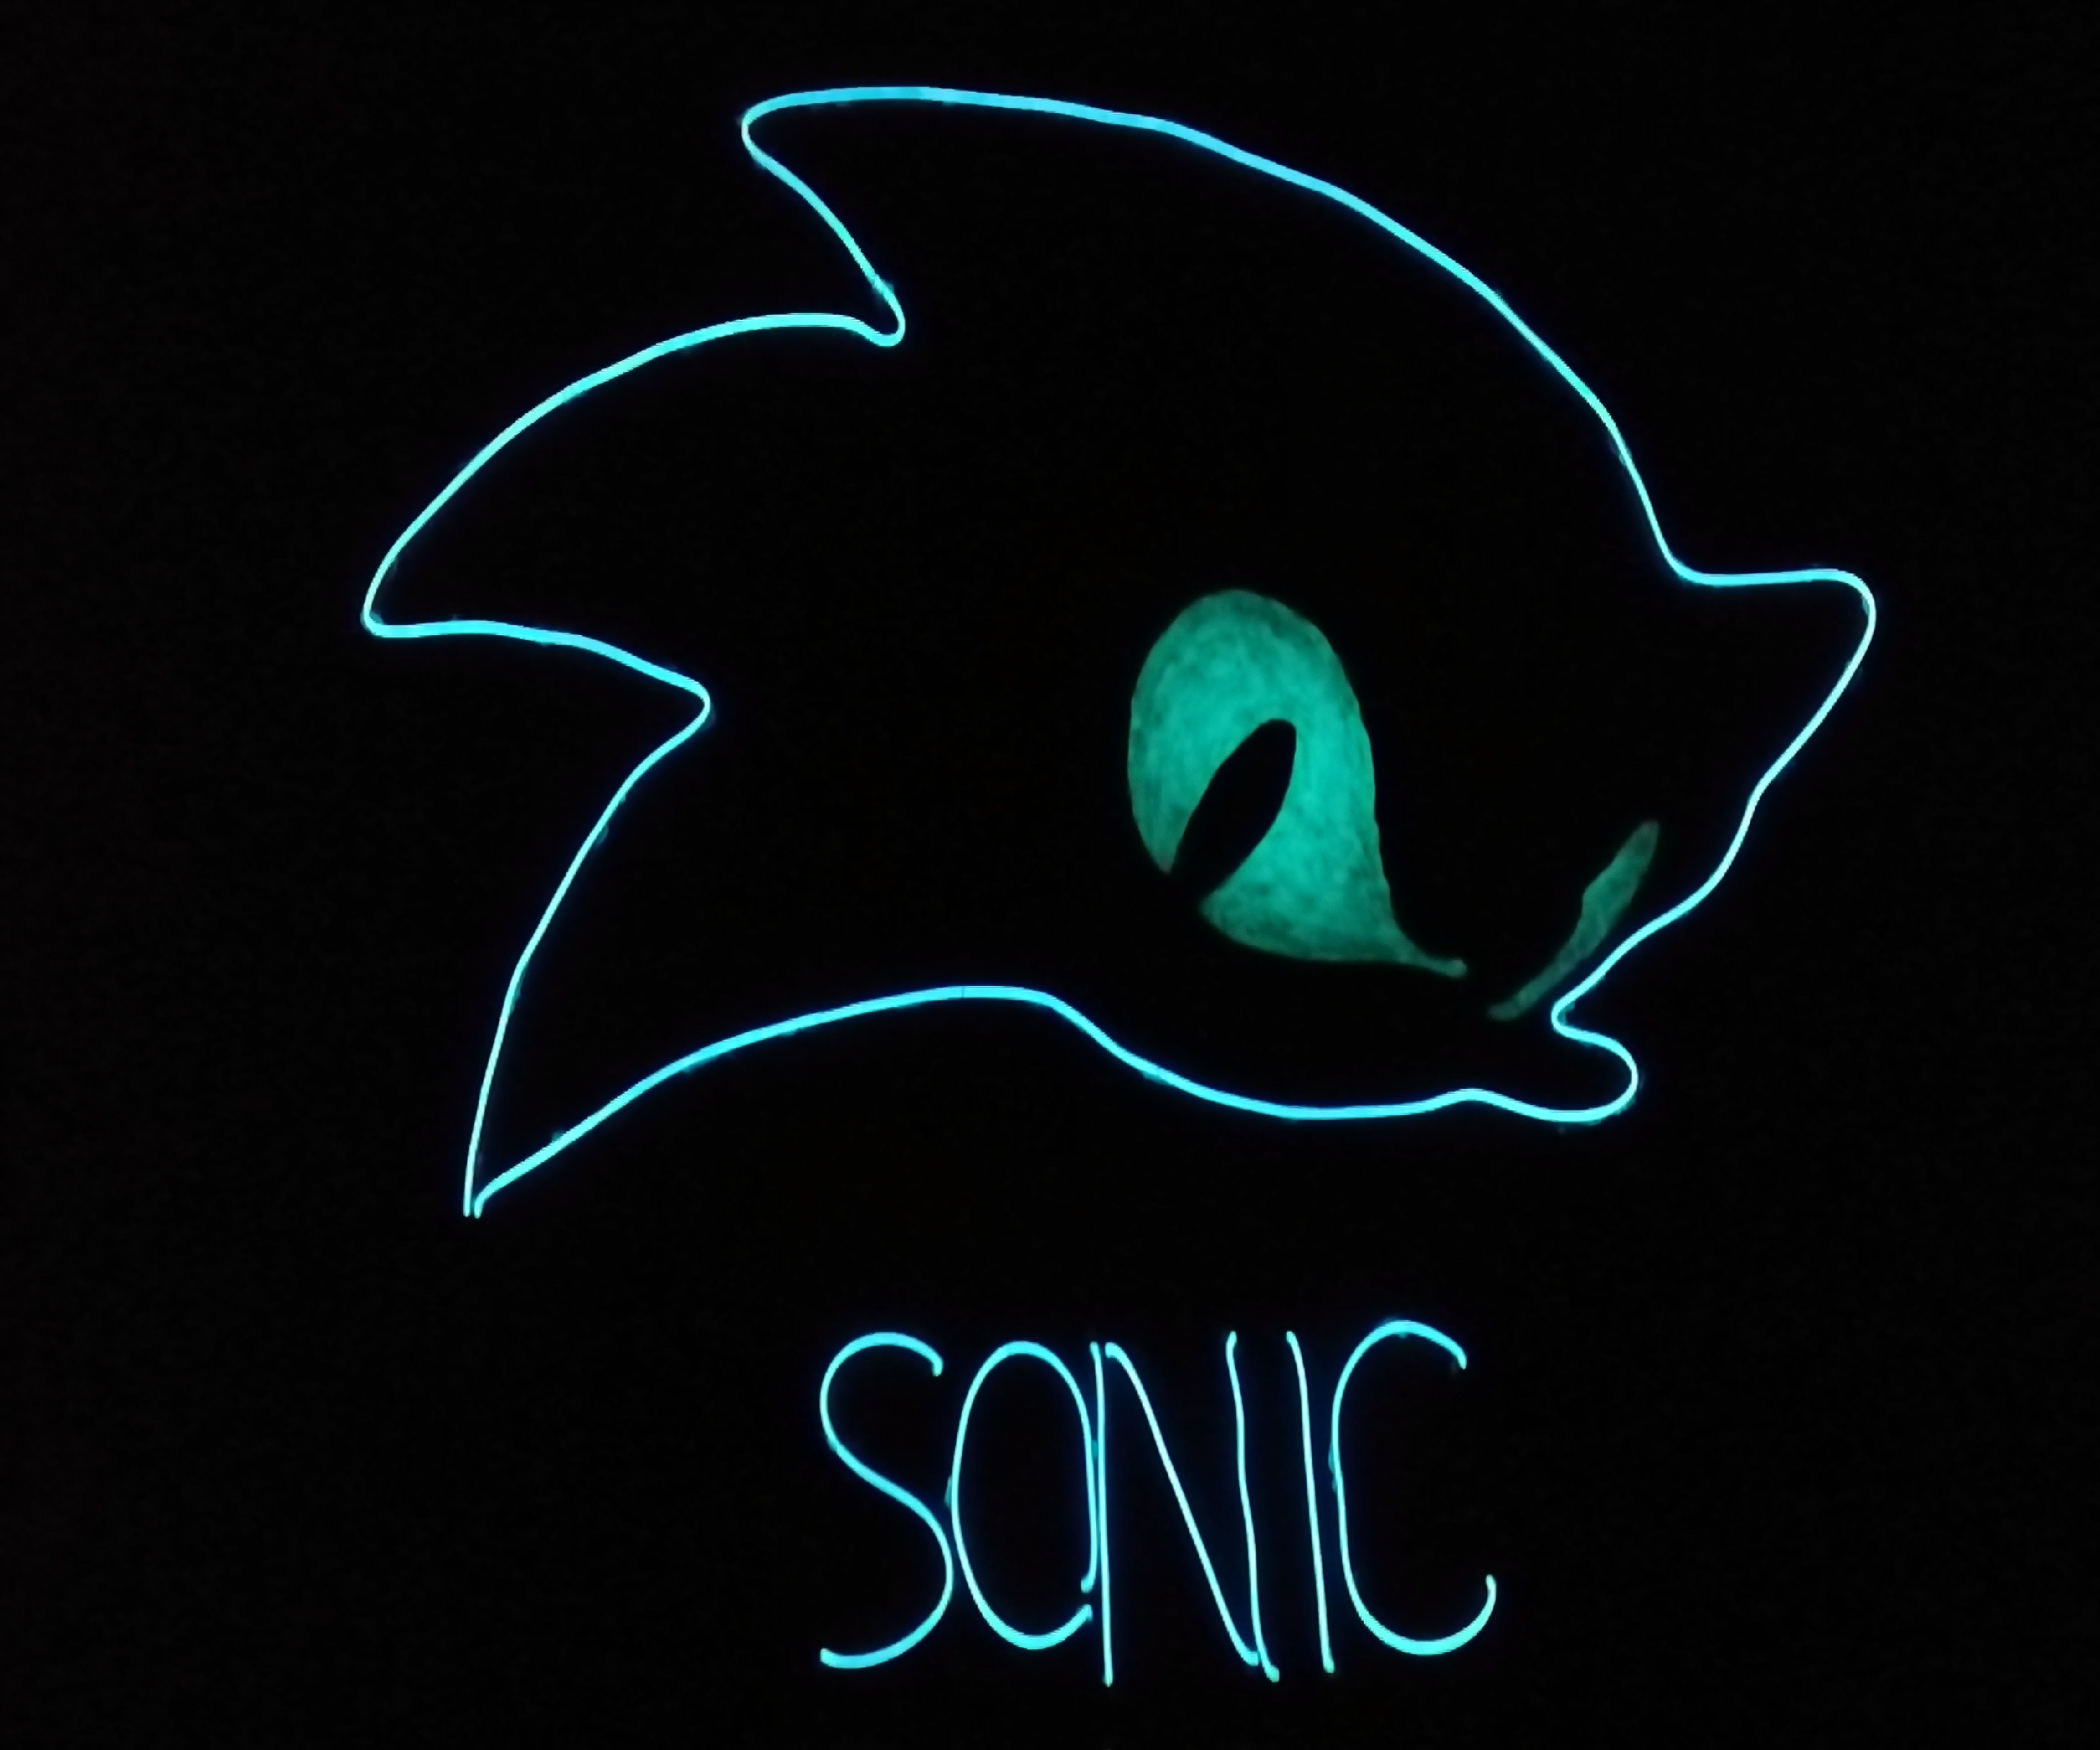 Sonic The Hedgehog Neon Sign 7 Steps Instructables